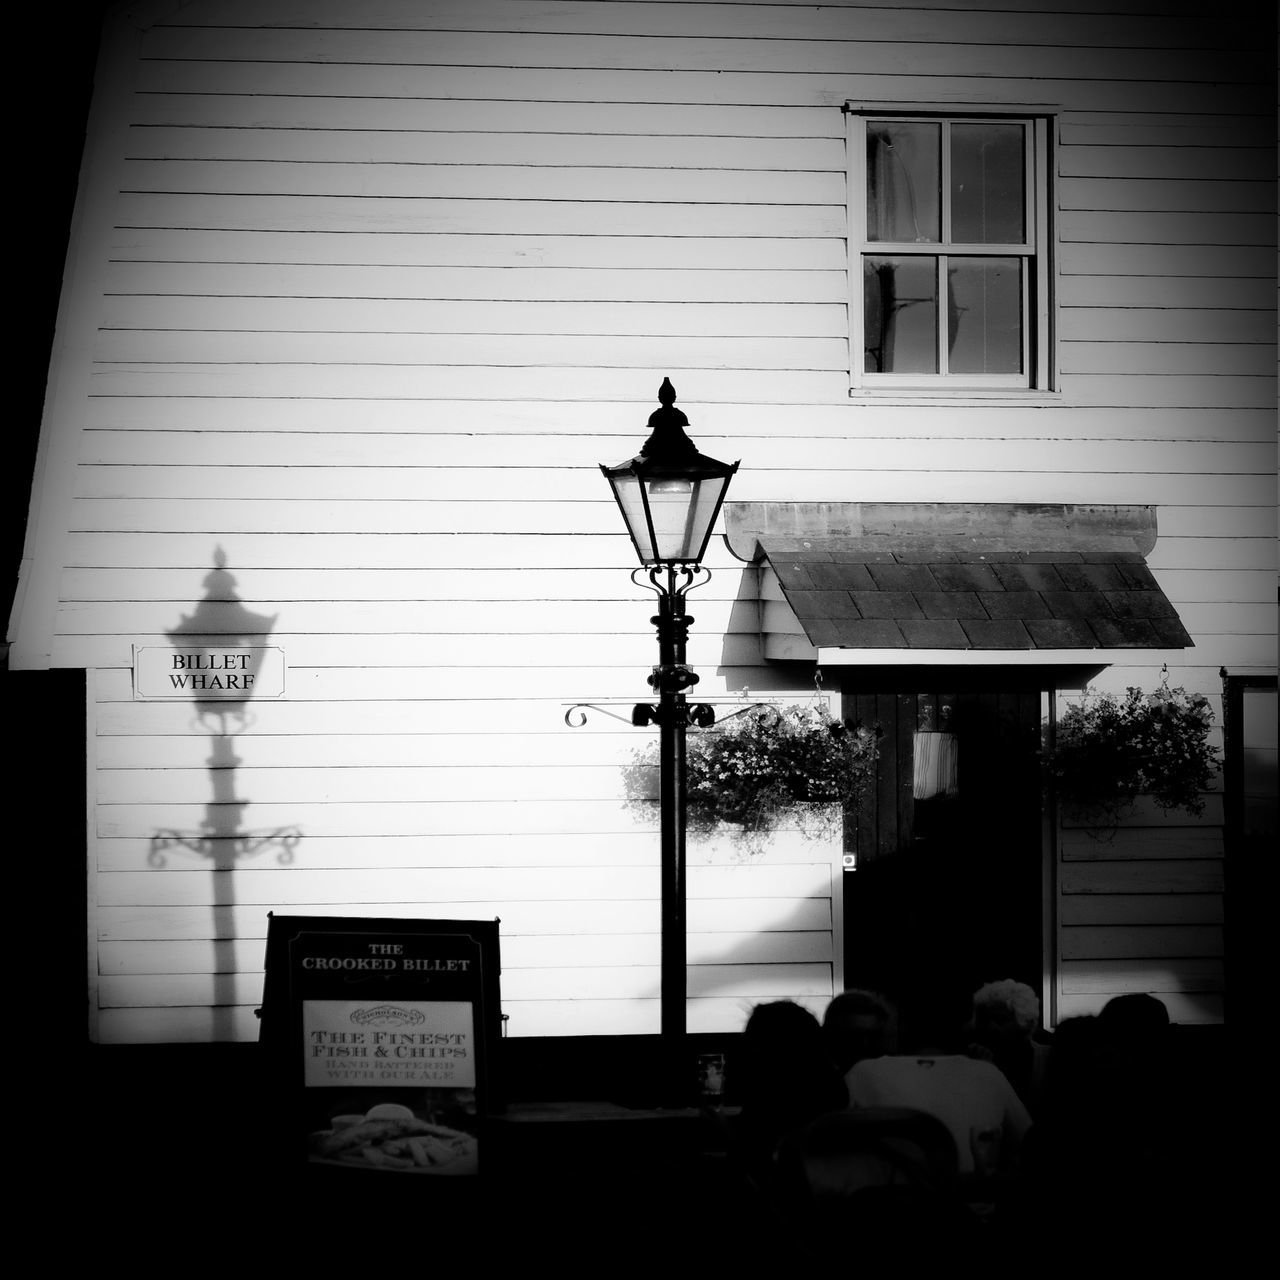 Architecture Black And White Building Crooked Billet Dark Essex Illuminated Lamp Lantern And Shadow Leigh On Sea Night Time No People Old Fashioned Old Leigh Paula Puncher Reflected Shadow Ship Lap Street Light Wooden House